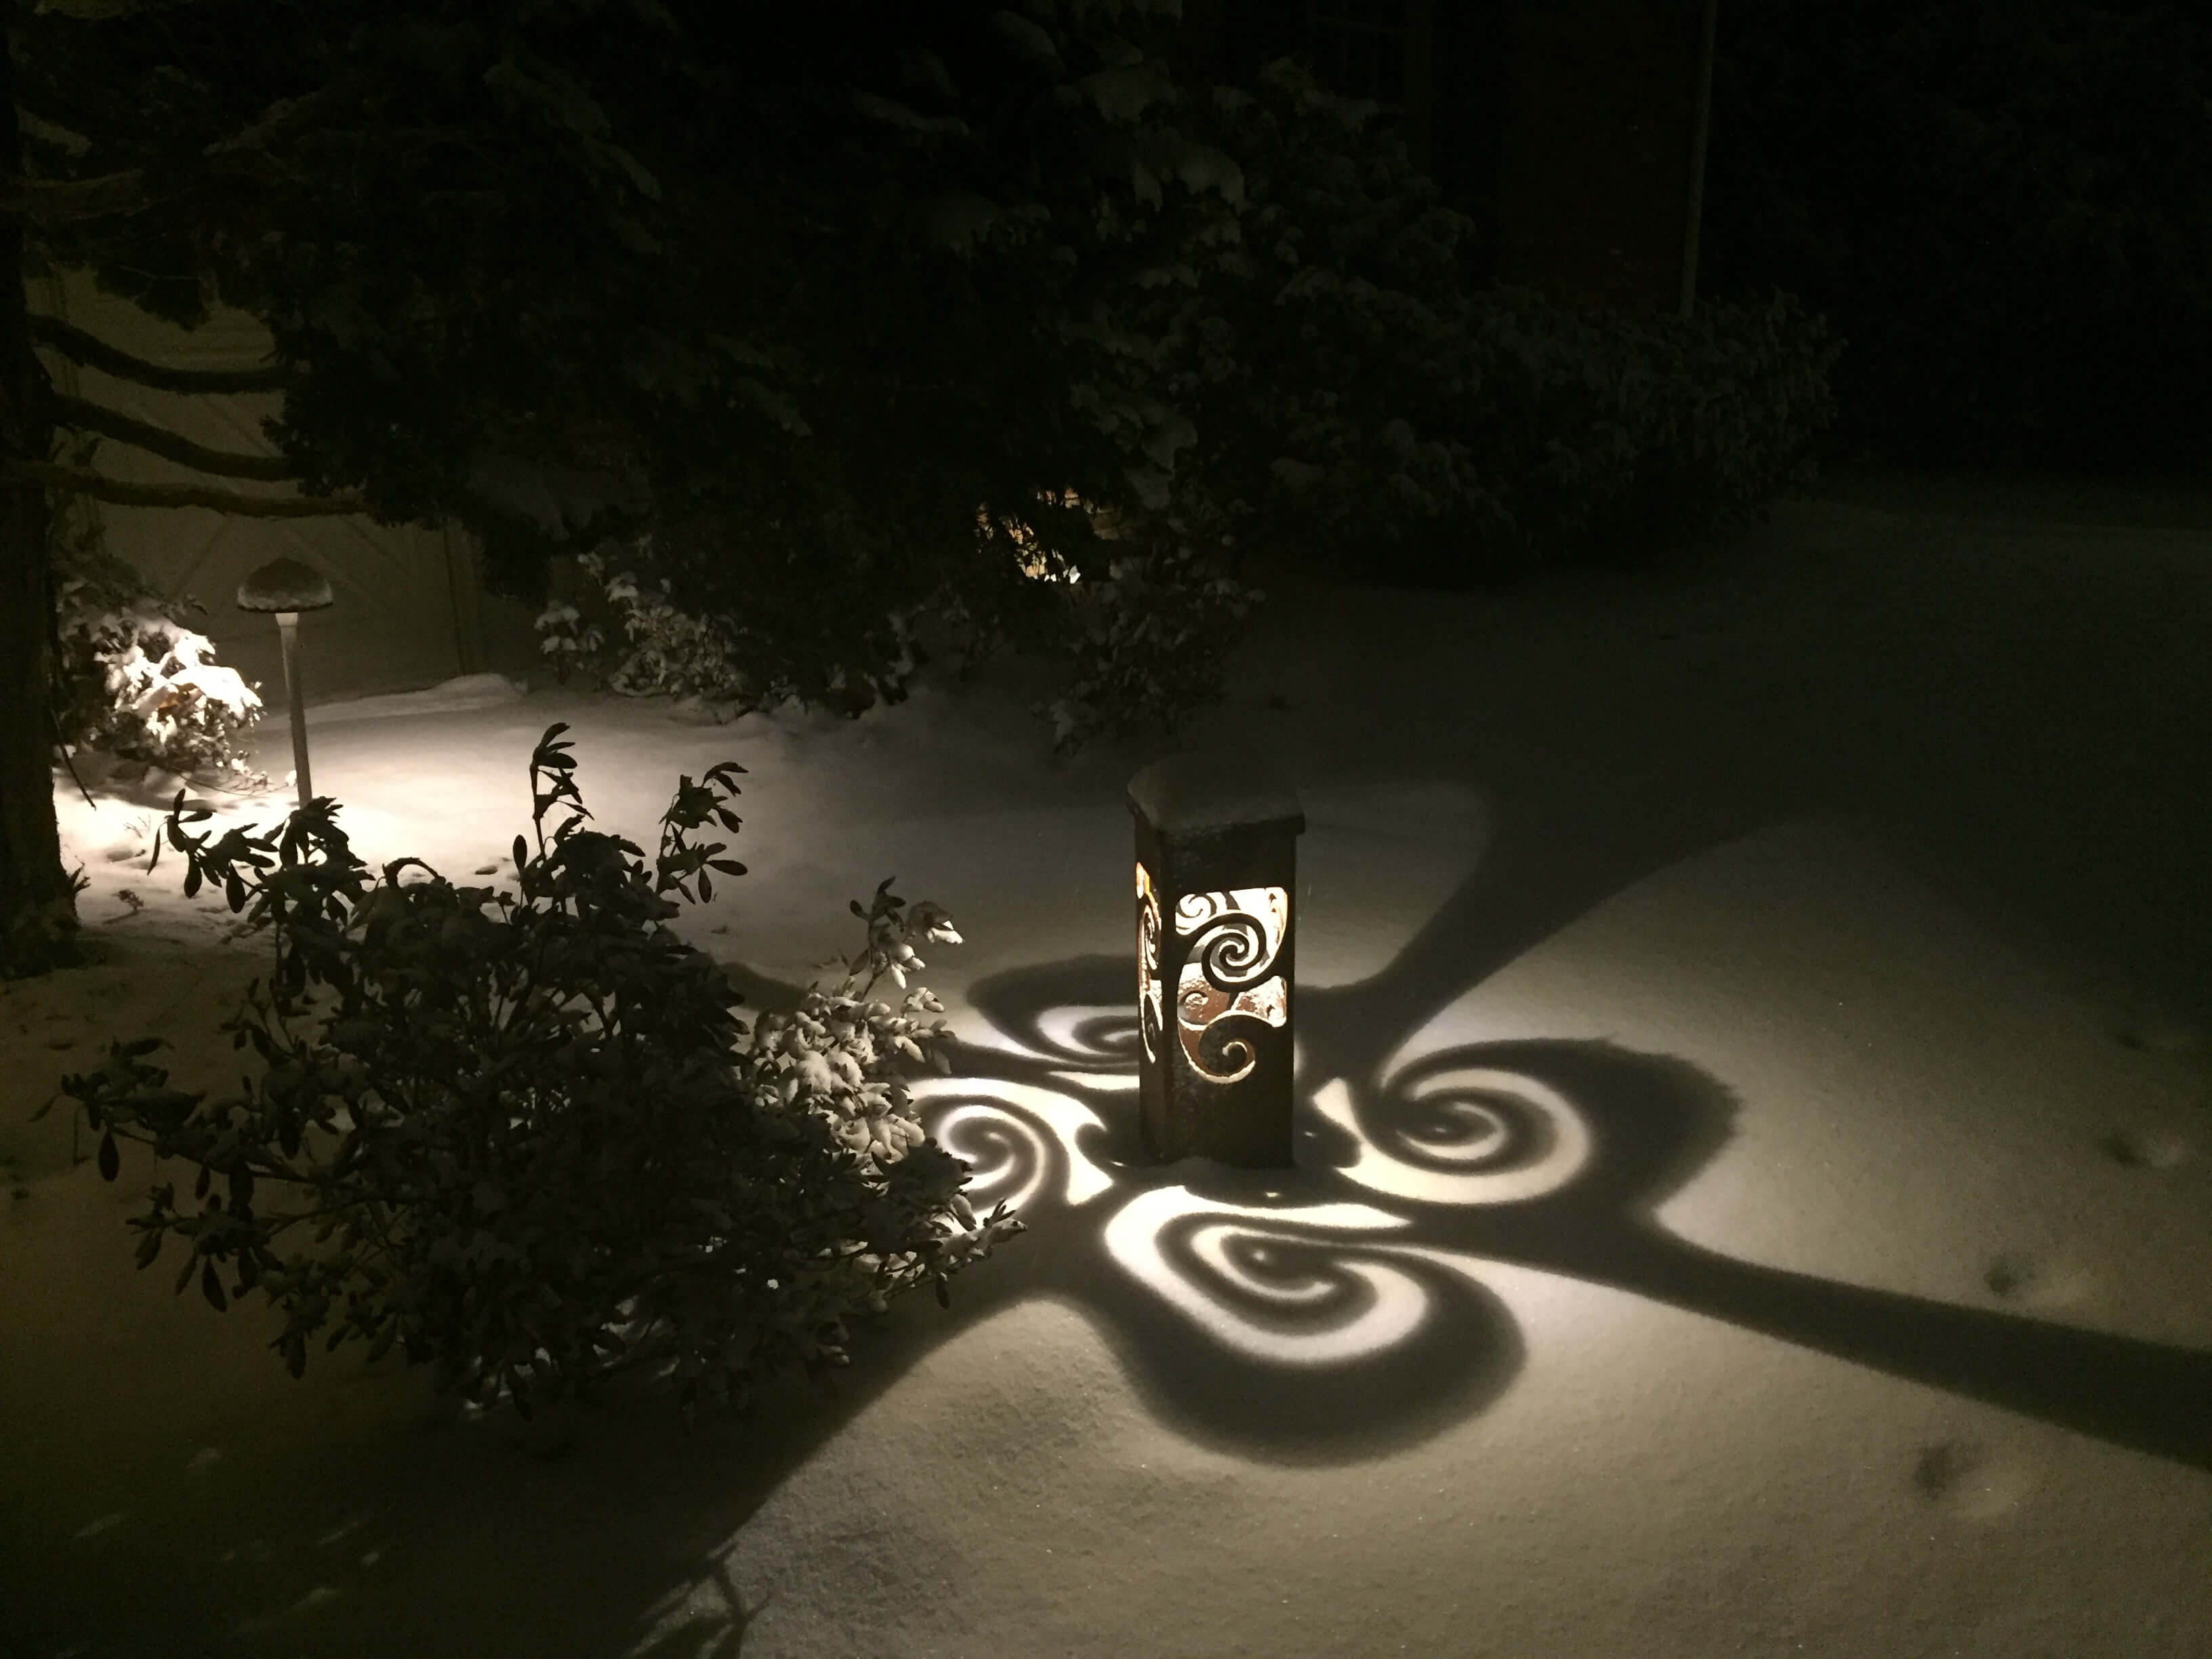 Decorative path lighting